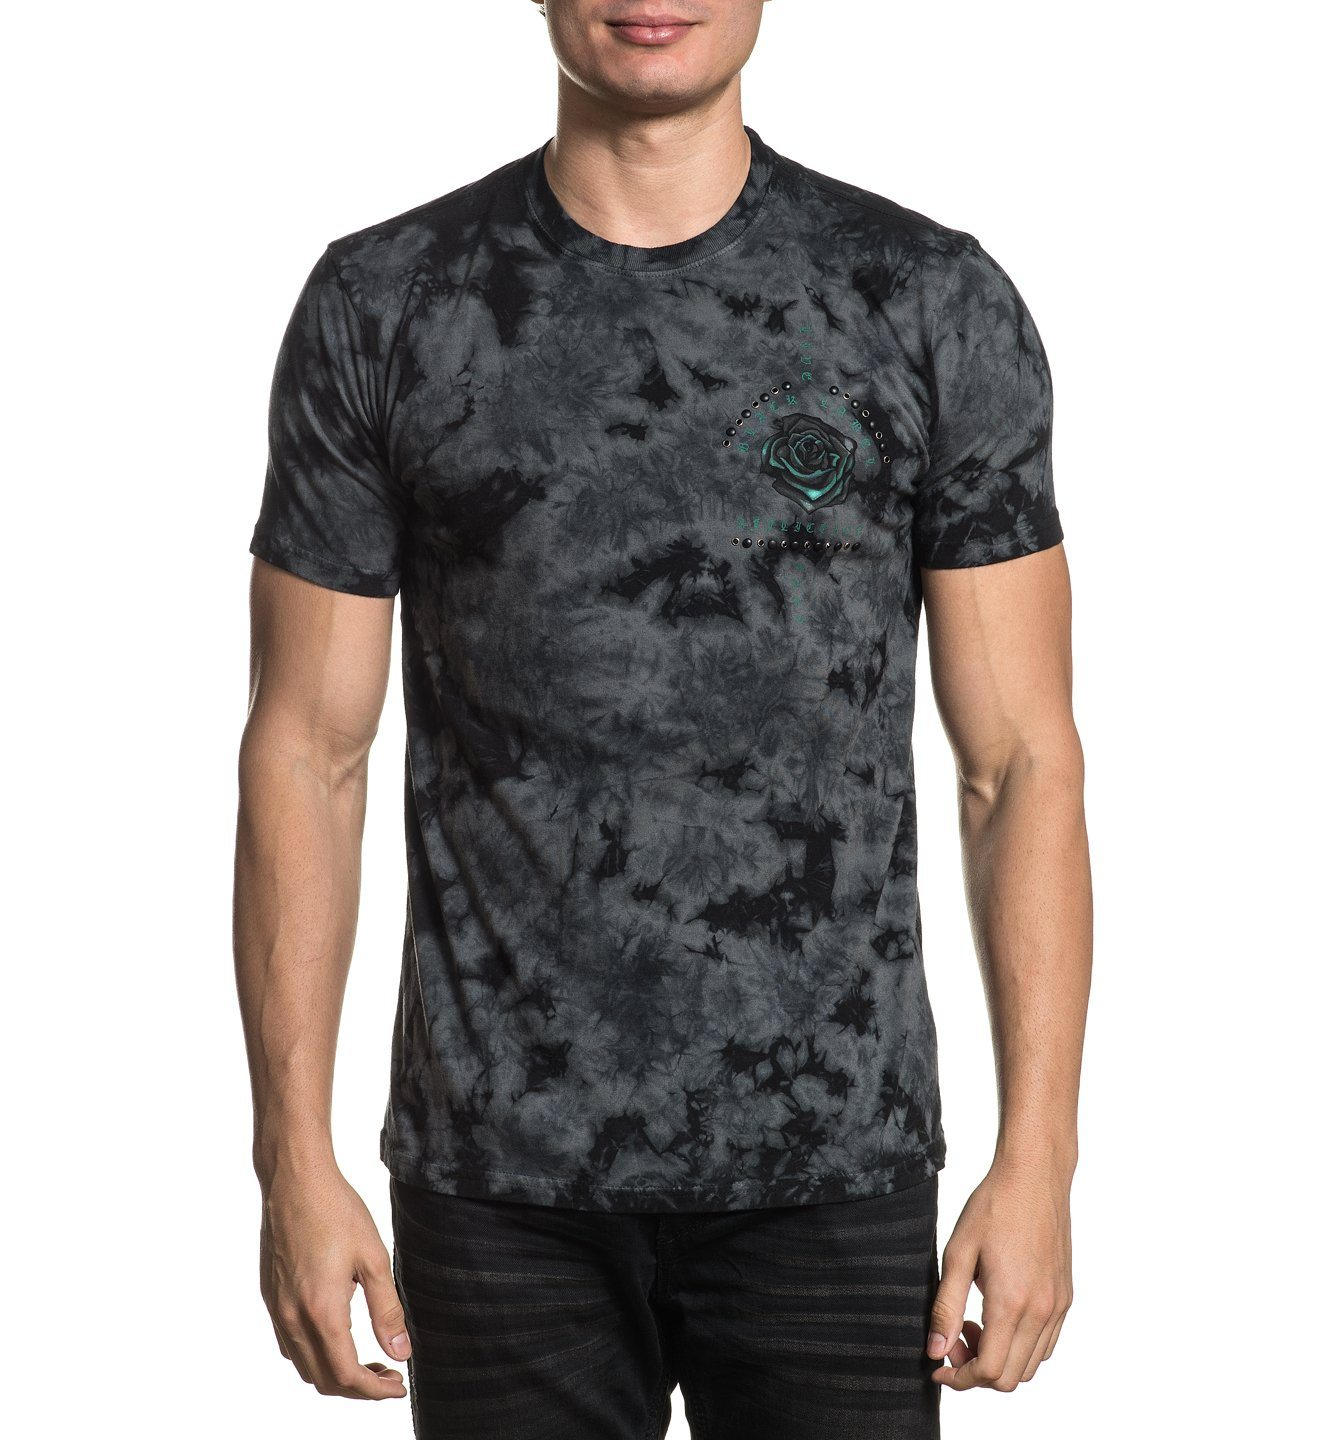 Forged In Sands - Mens Short Sleeve Tees - Affliction Clothing